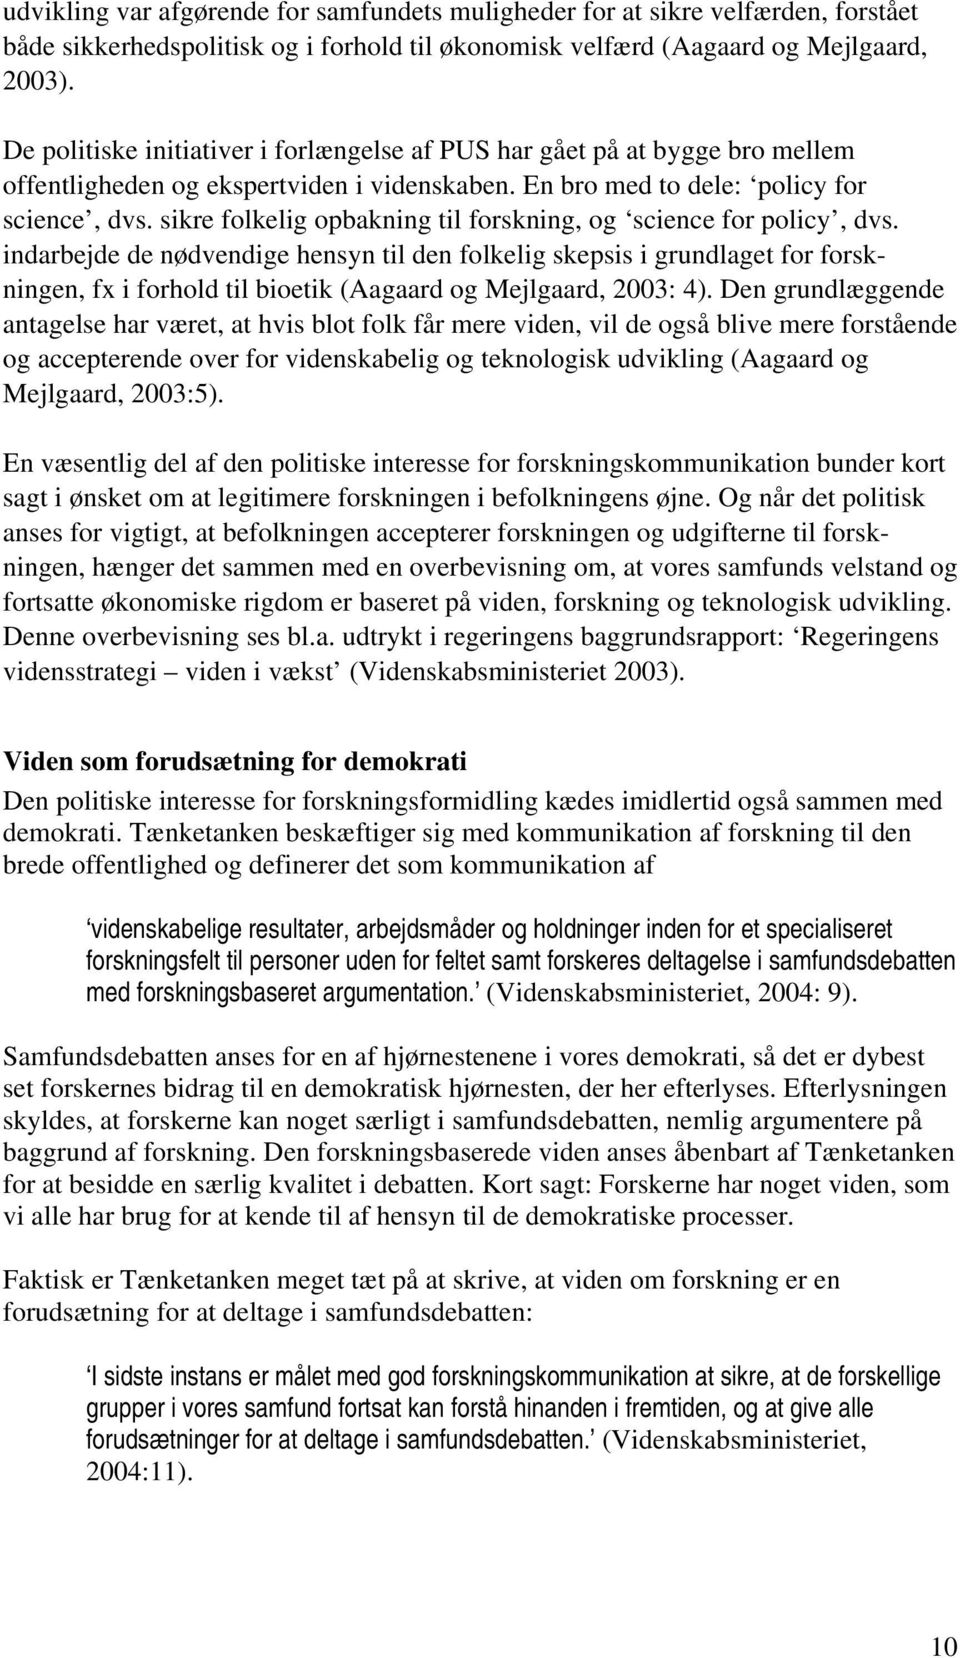 sikre folkelig opbakning til forskning, og science for policy, dvs.